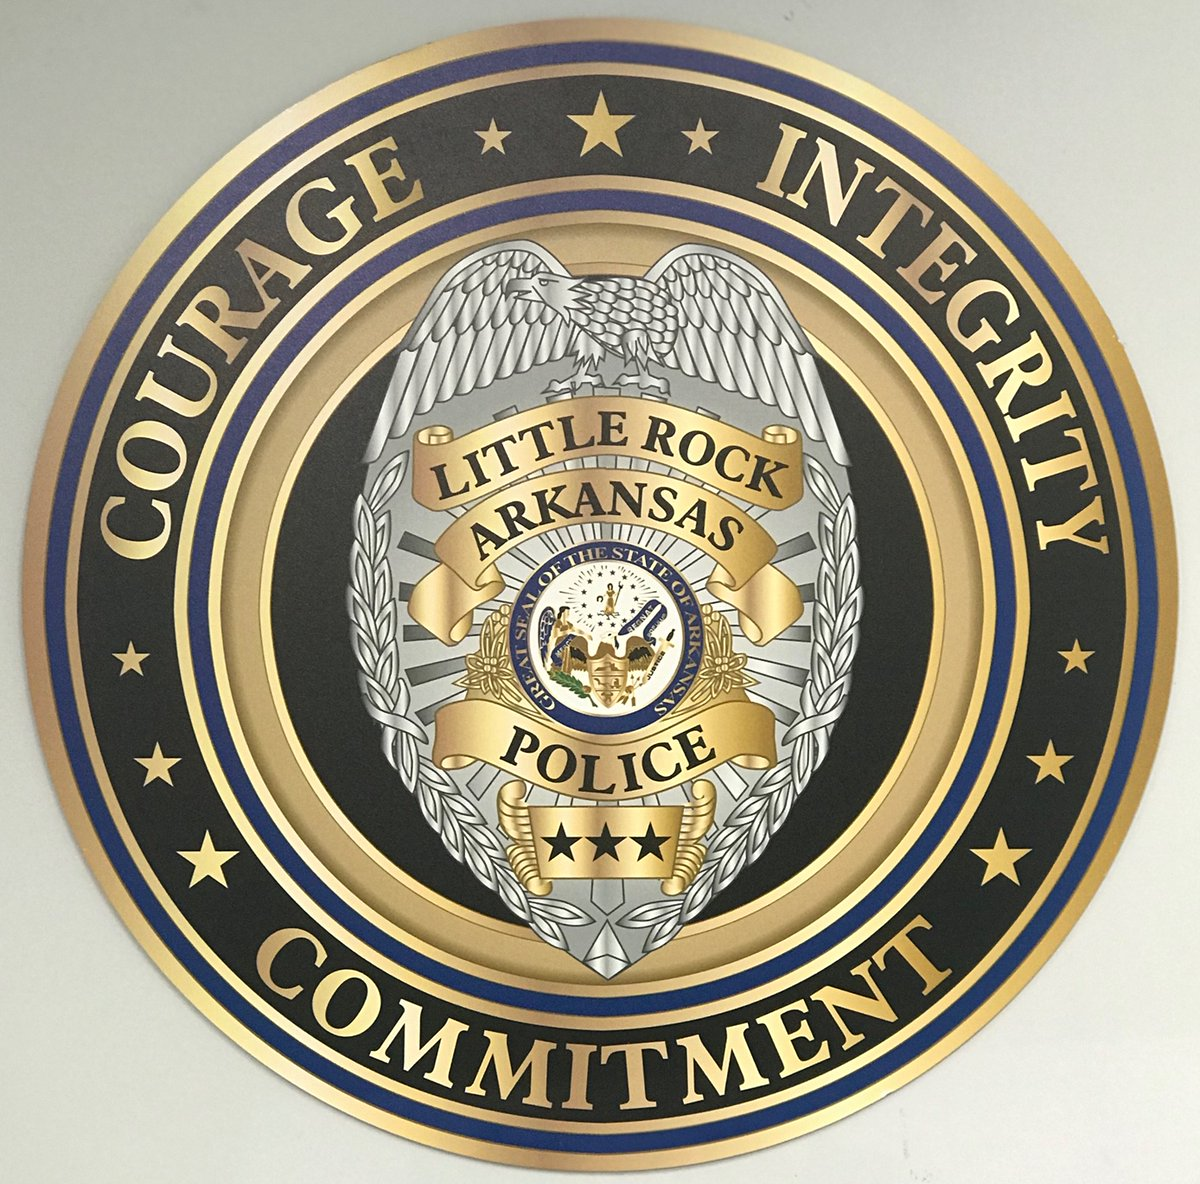 Four Non-Sworn and One Sworn member of the Little Rock Police Department Training Division, have tested positive for COVID-19. The entire Division has been tested without further positive results. None of these employees have had contact with the community. Post 1 of 2 https://t.co/bTLqY2efAW